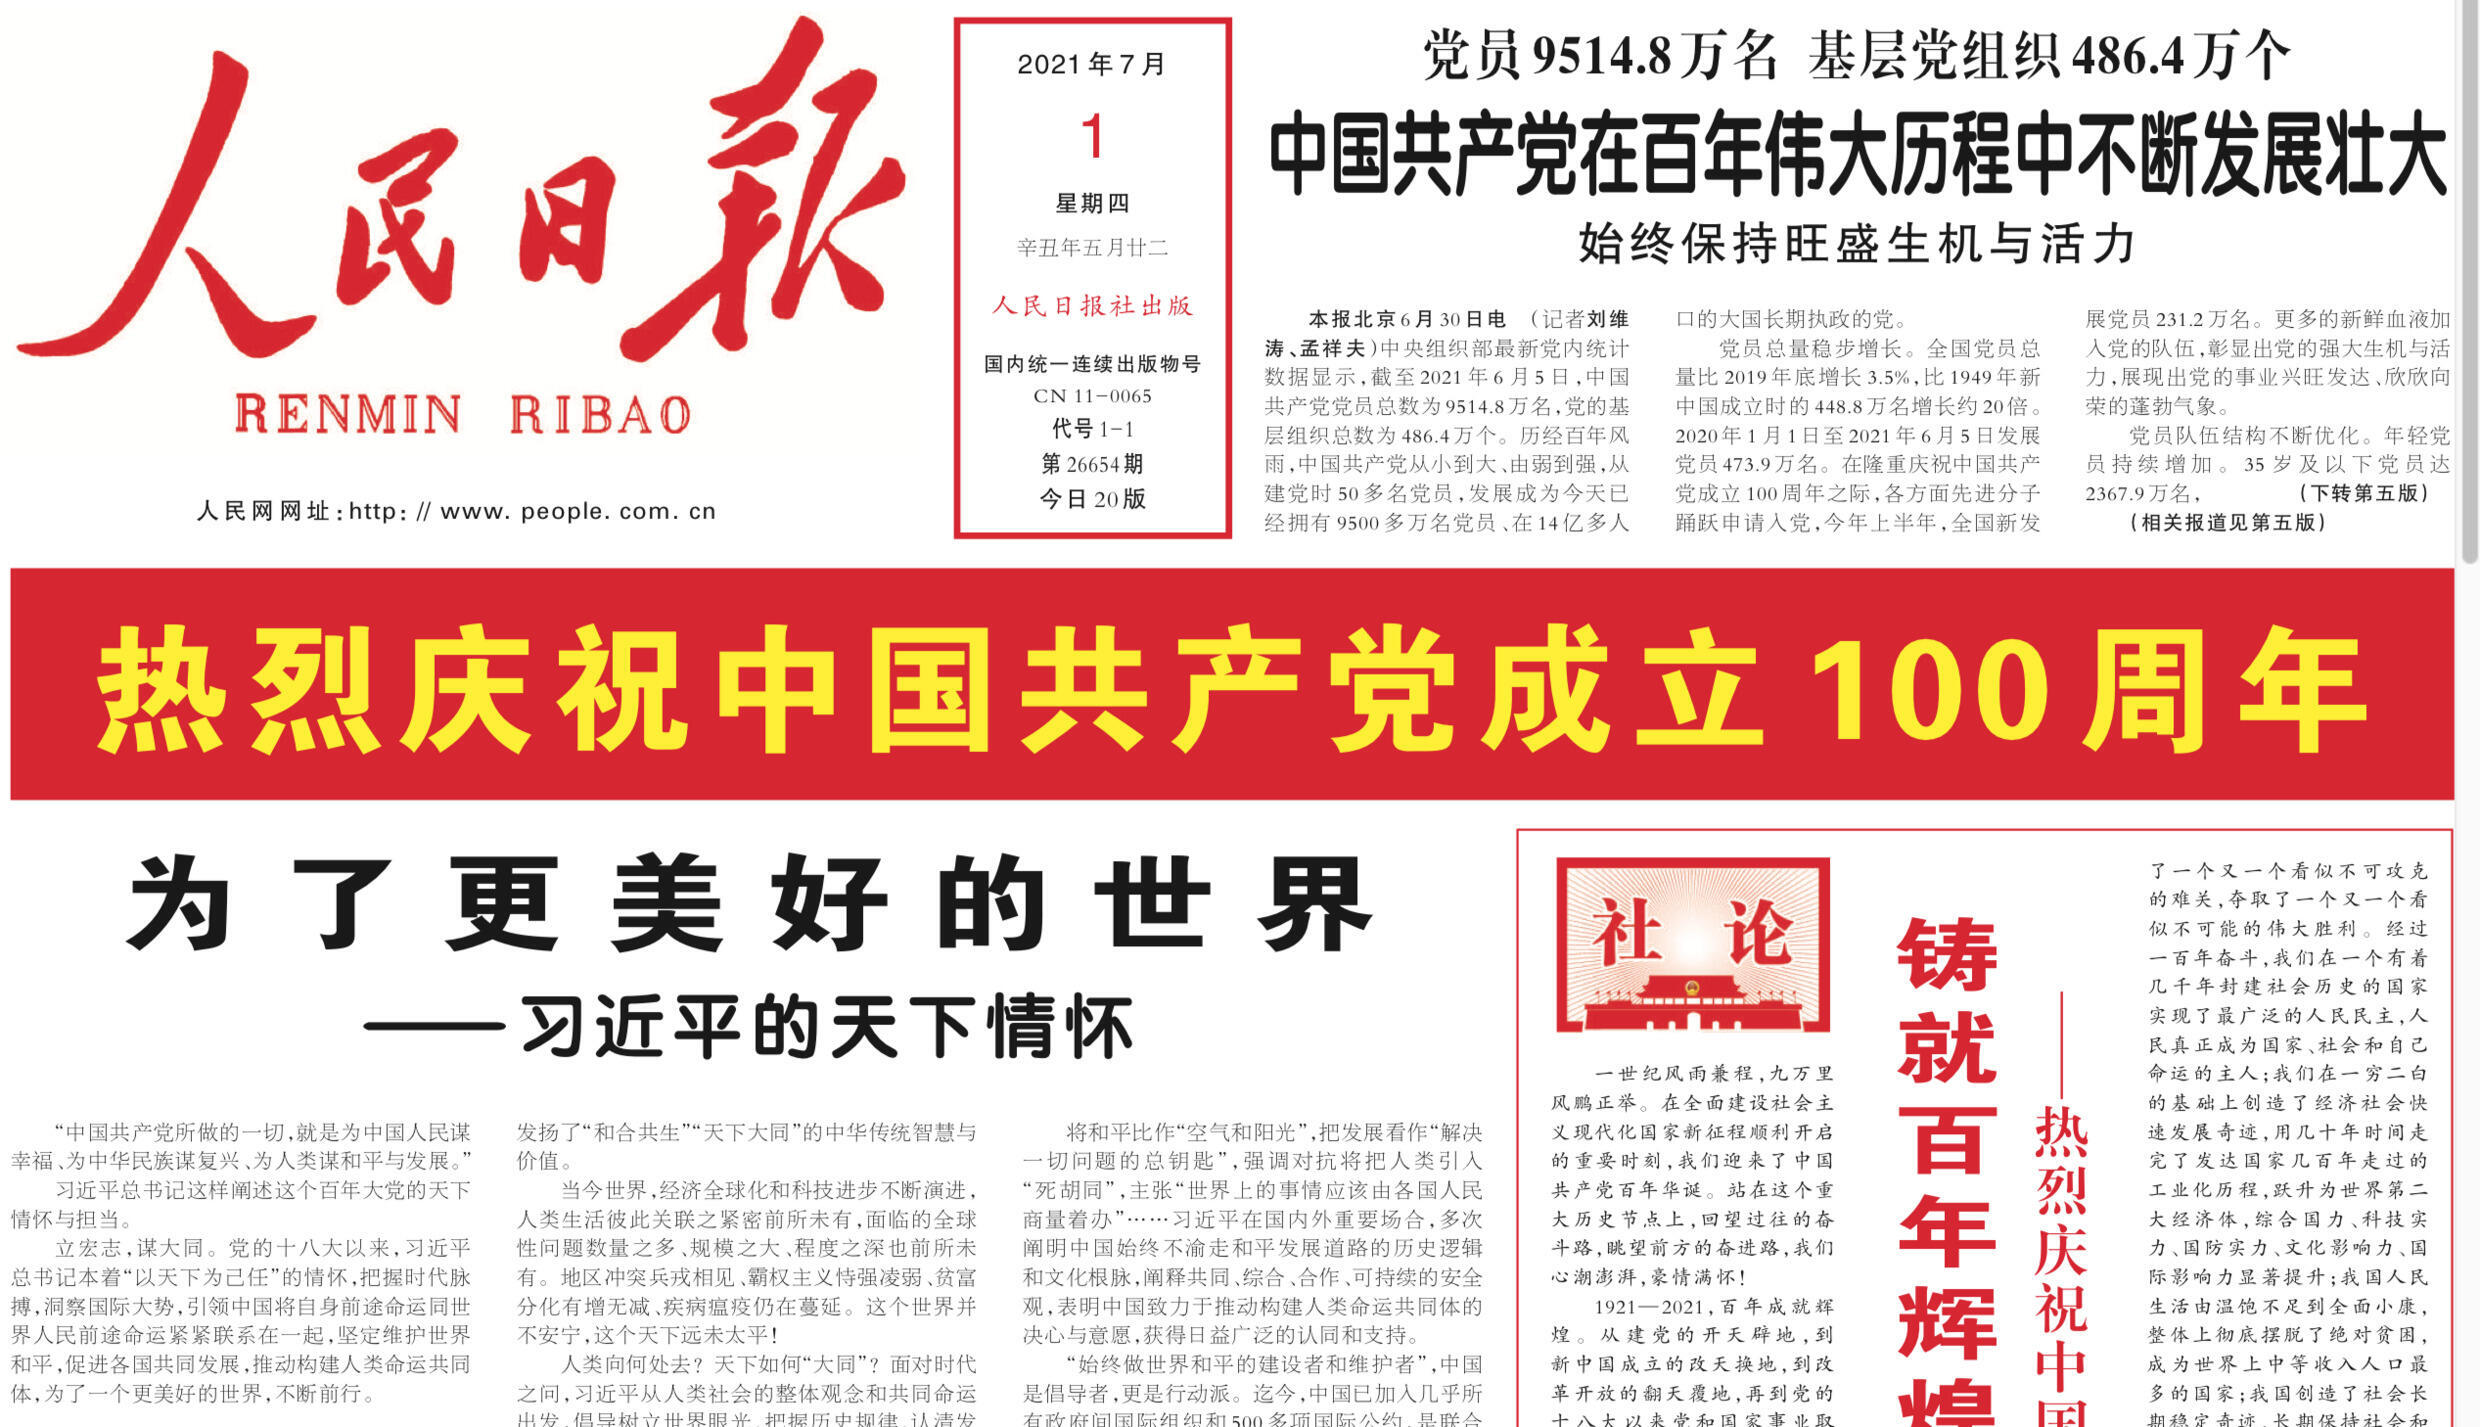 2021-07-01 Front page rmrb